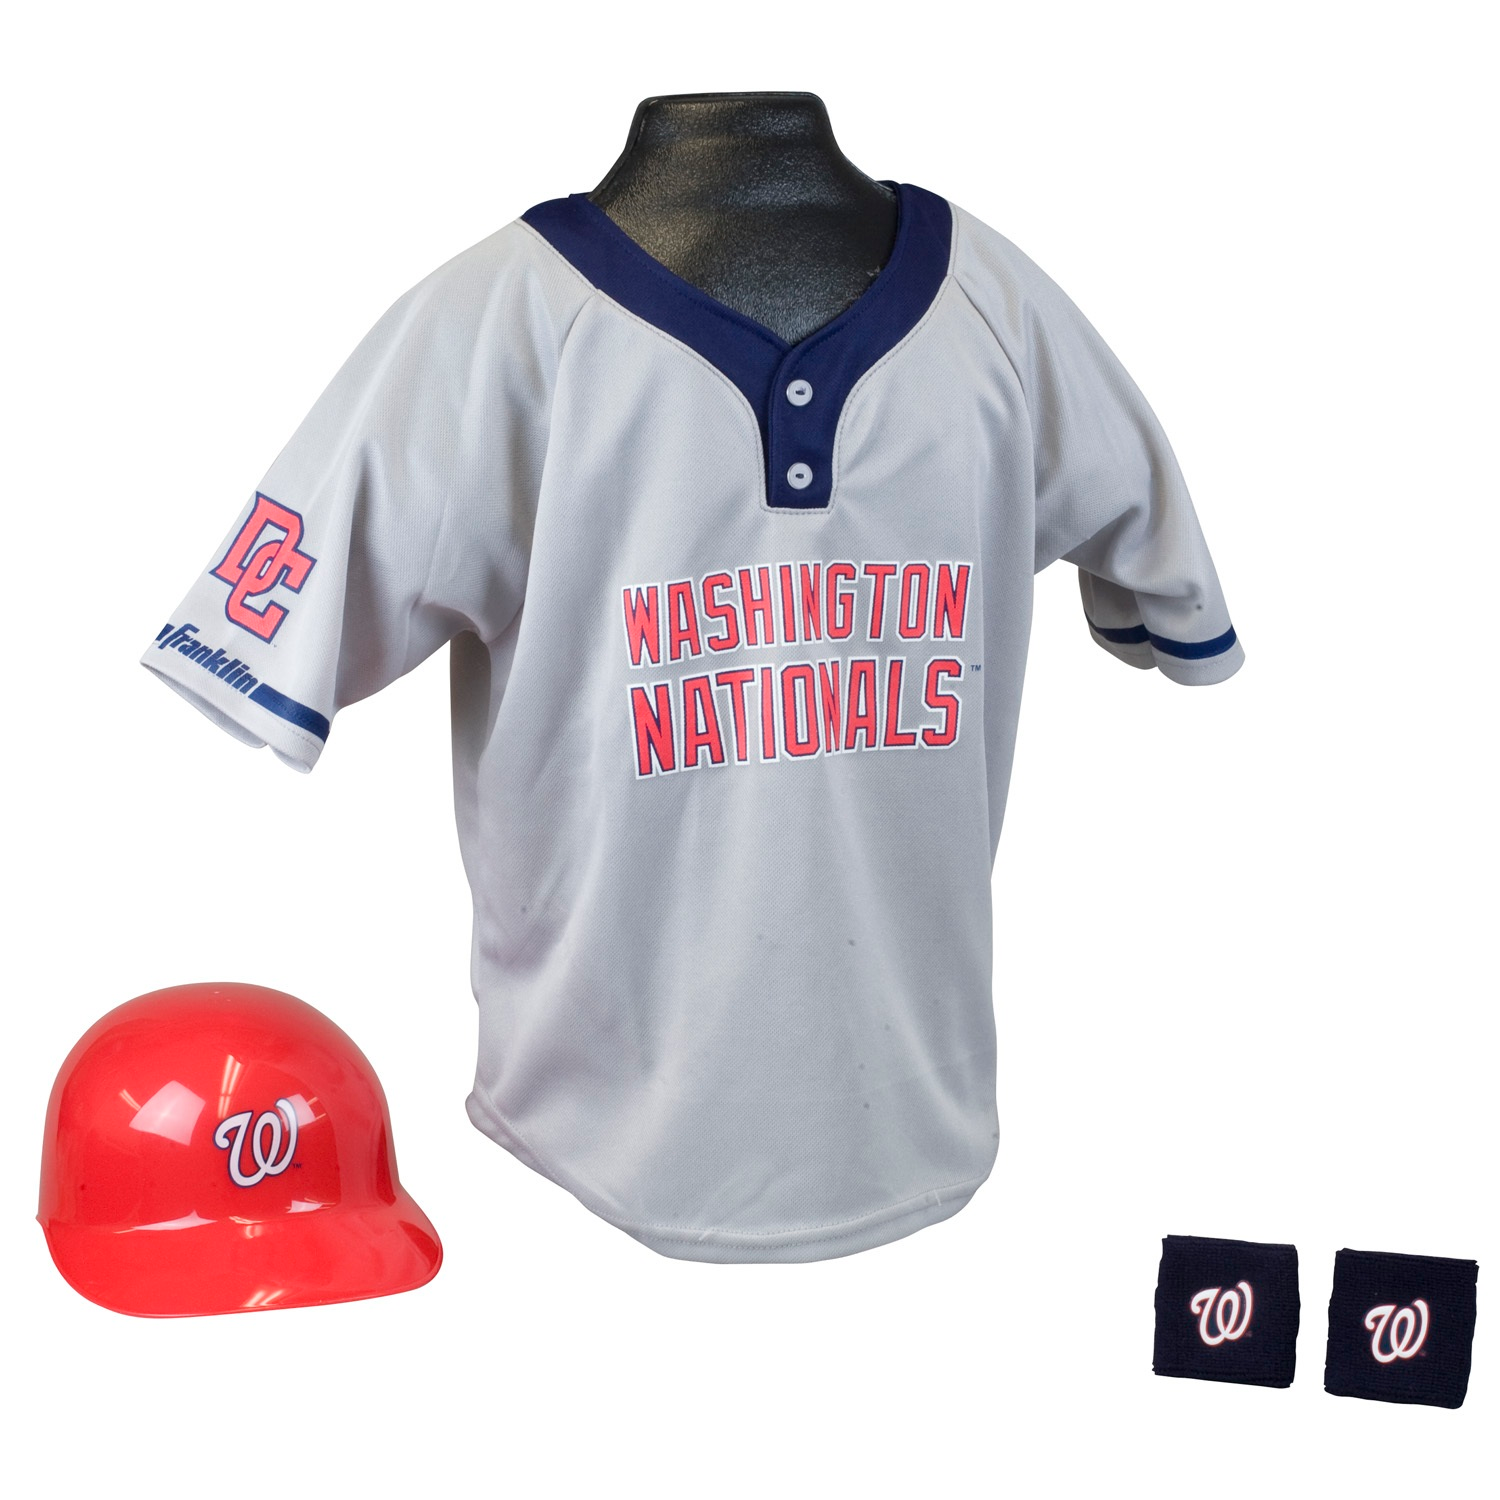 Washington Nationals MLB Youth Uniform Set Halloween Costume